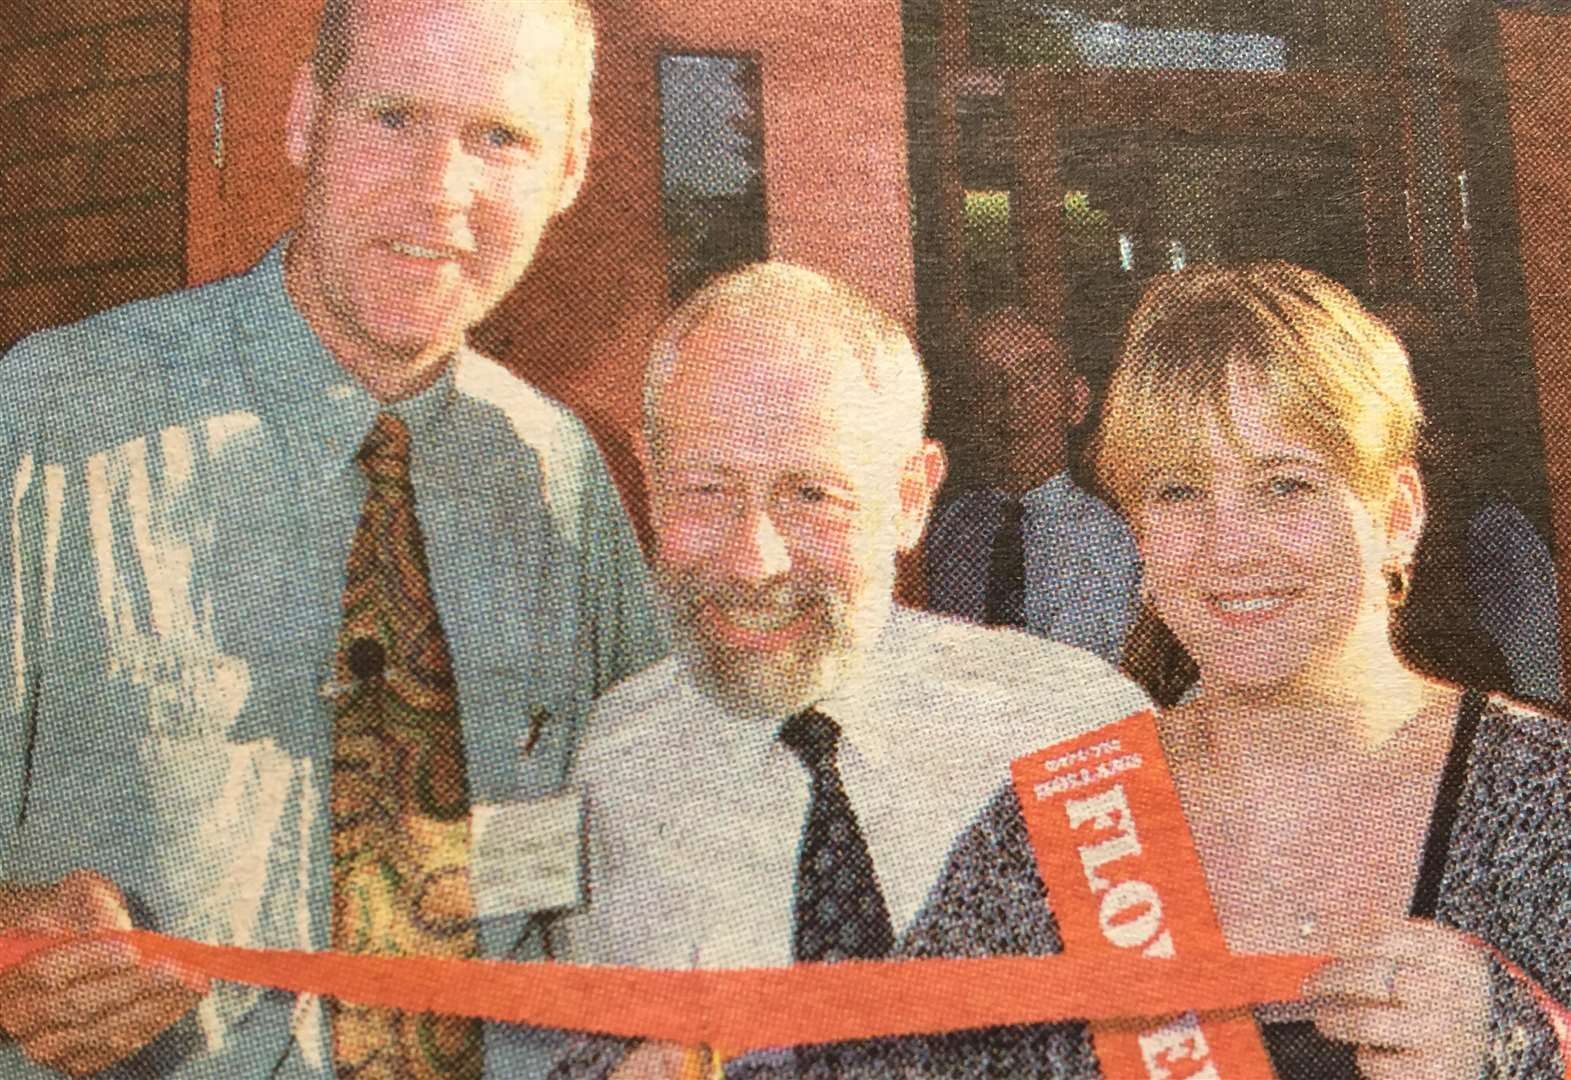 NOSTALGIA: Flower Queen opens village hall in '99